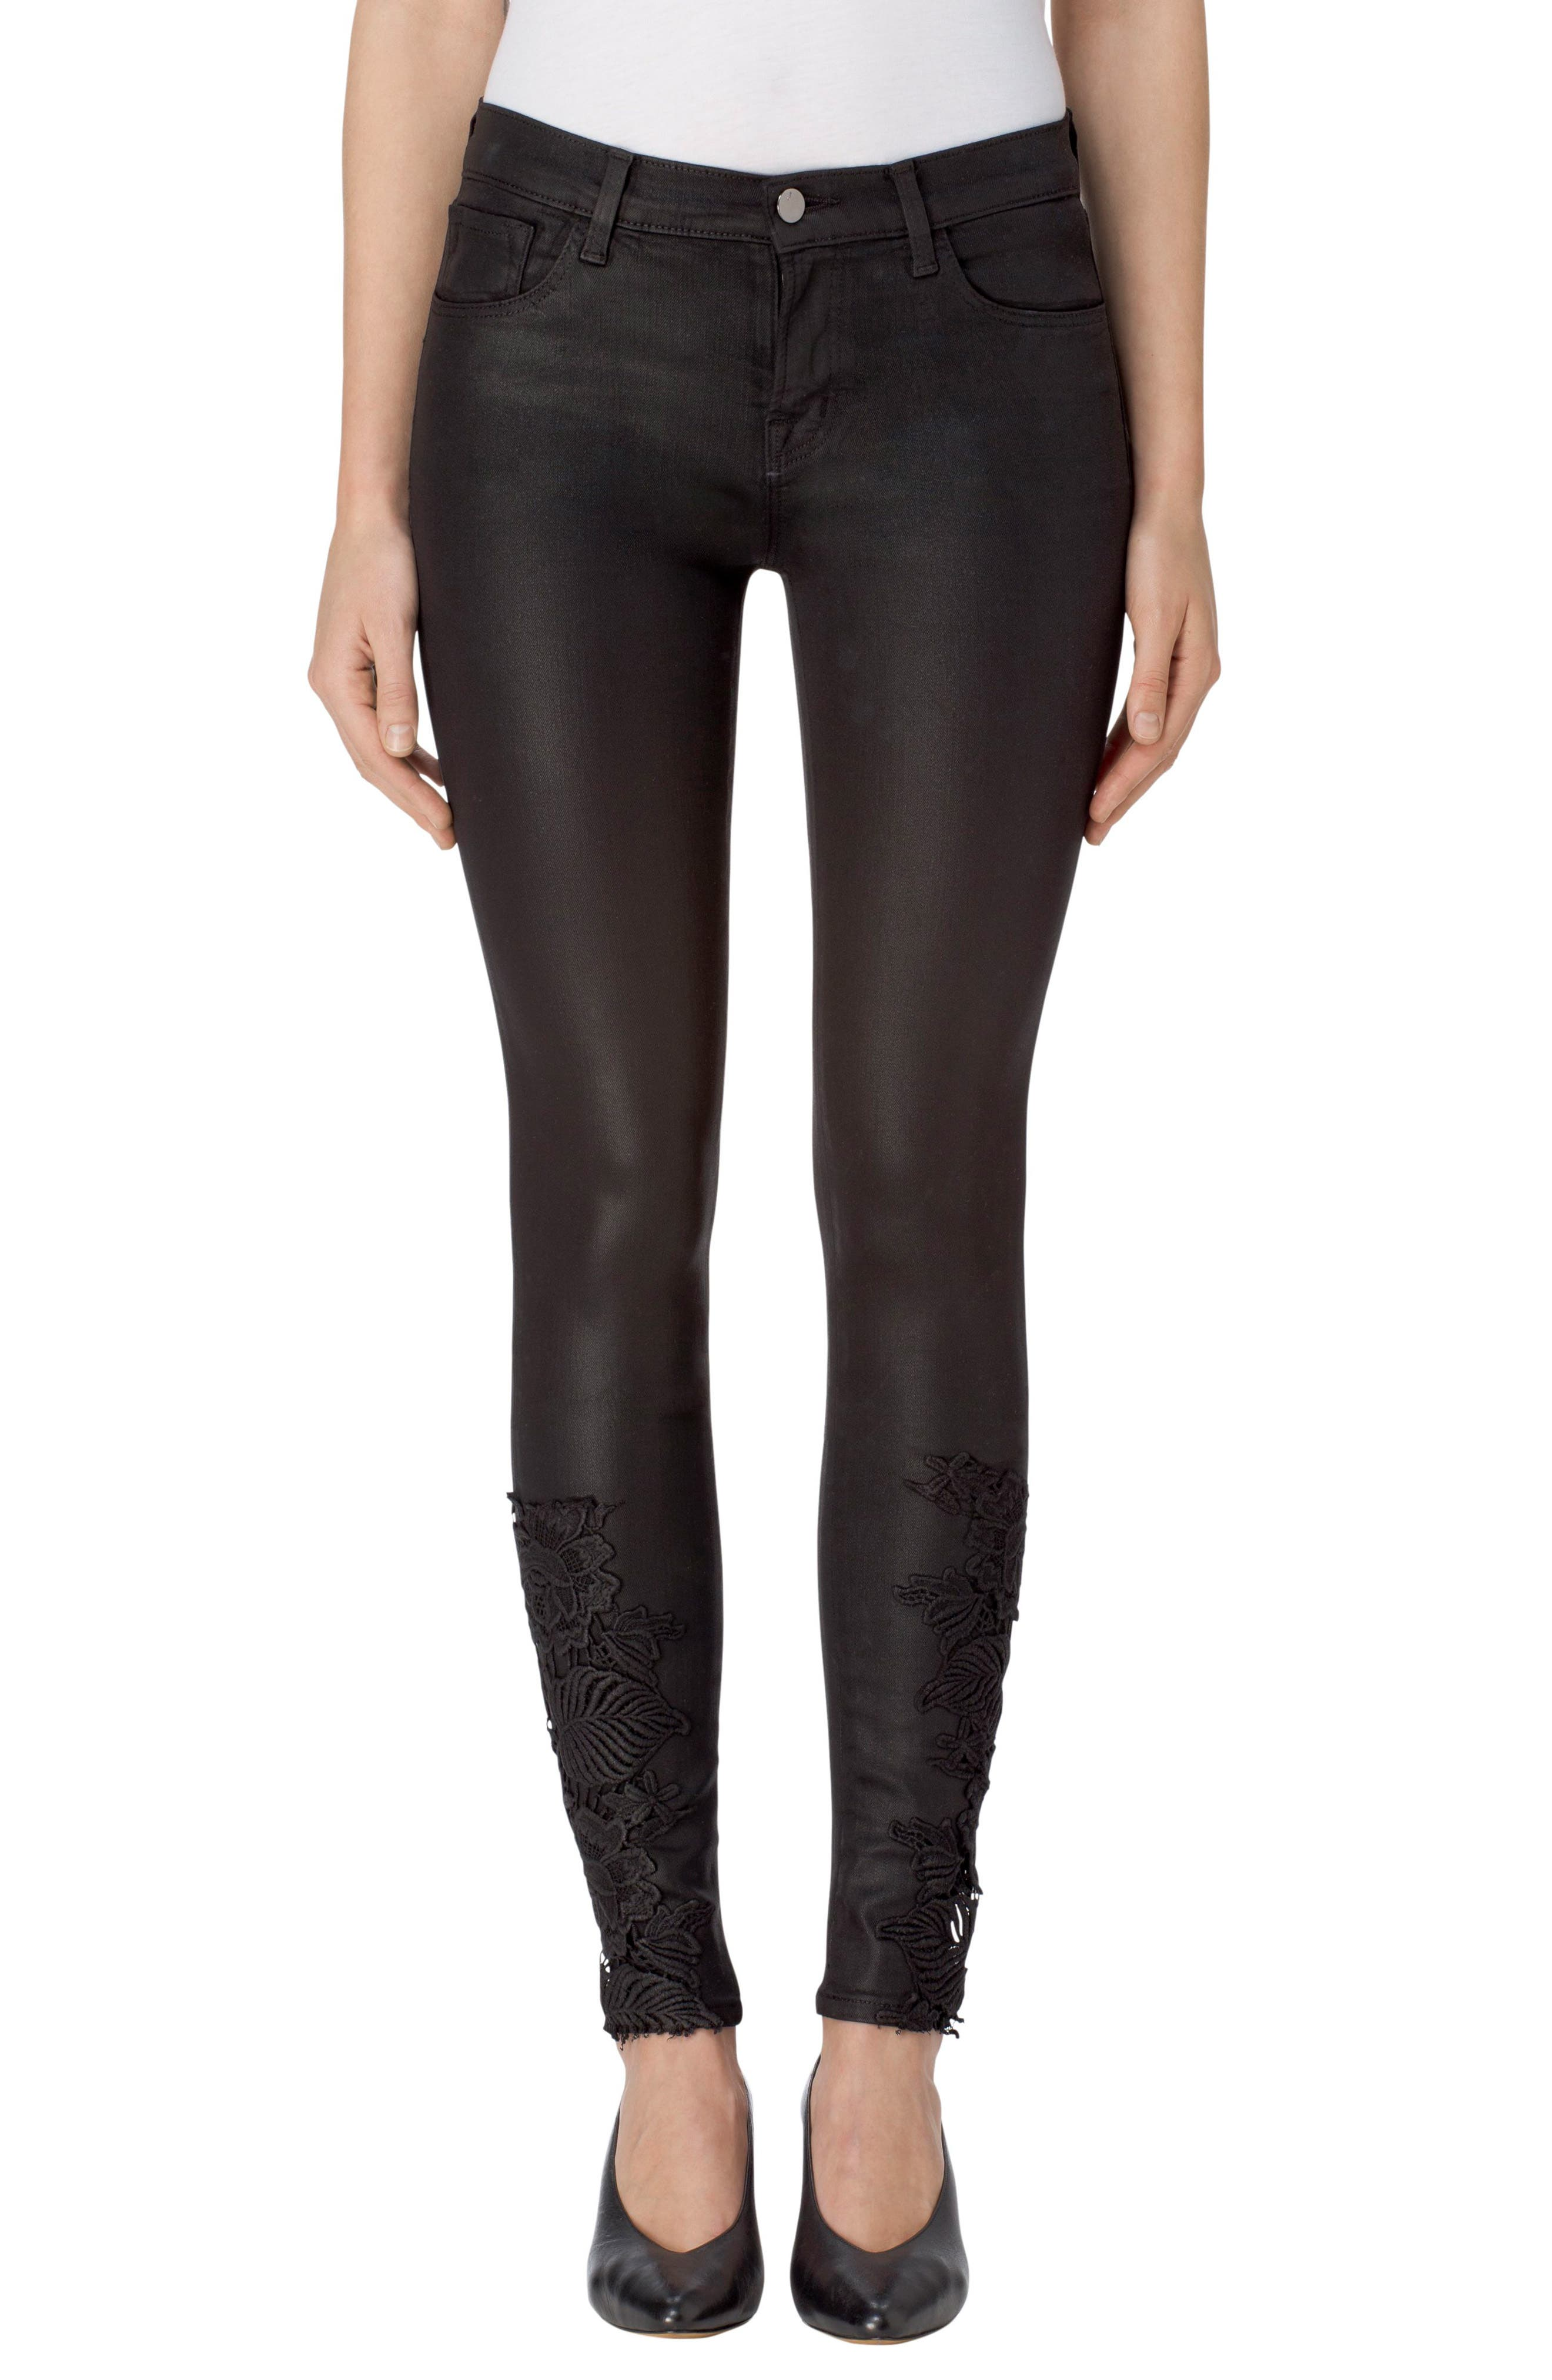 J Brand 620 Mid Rise Super Skinny Jeans (Coated Black Lace)